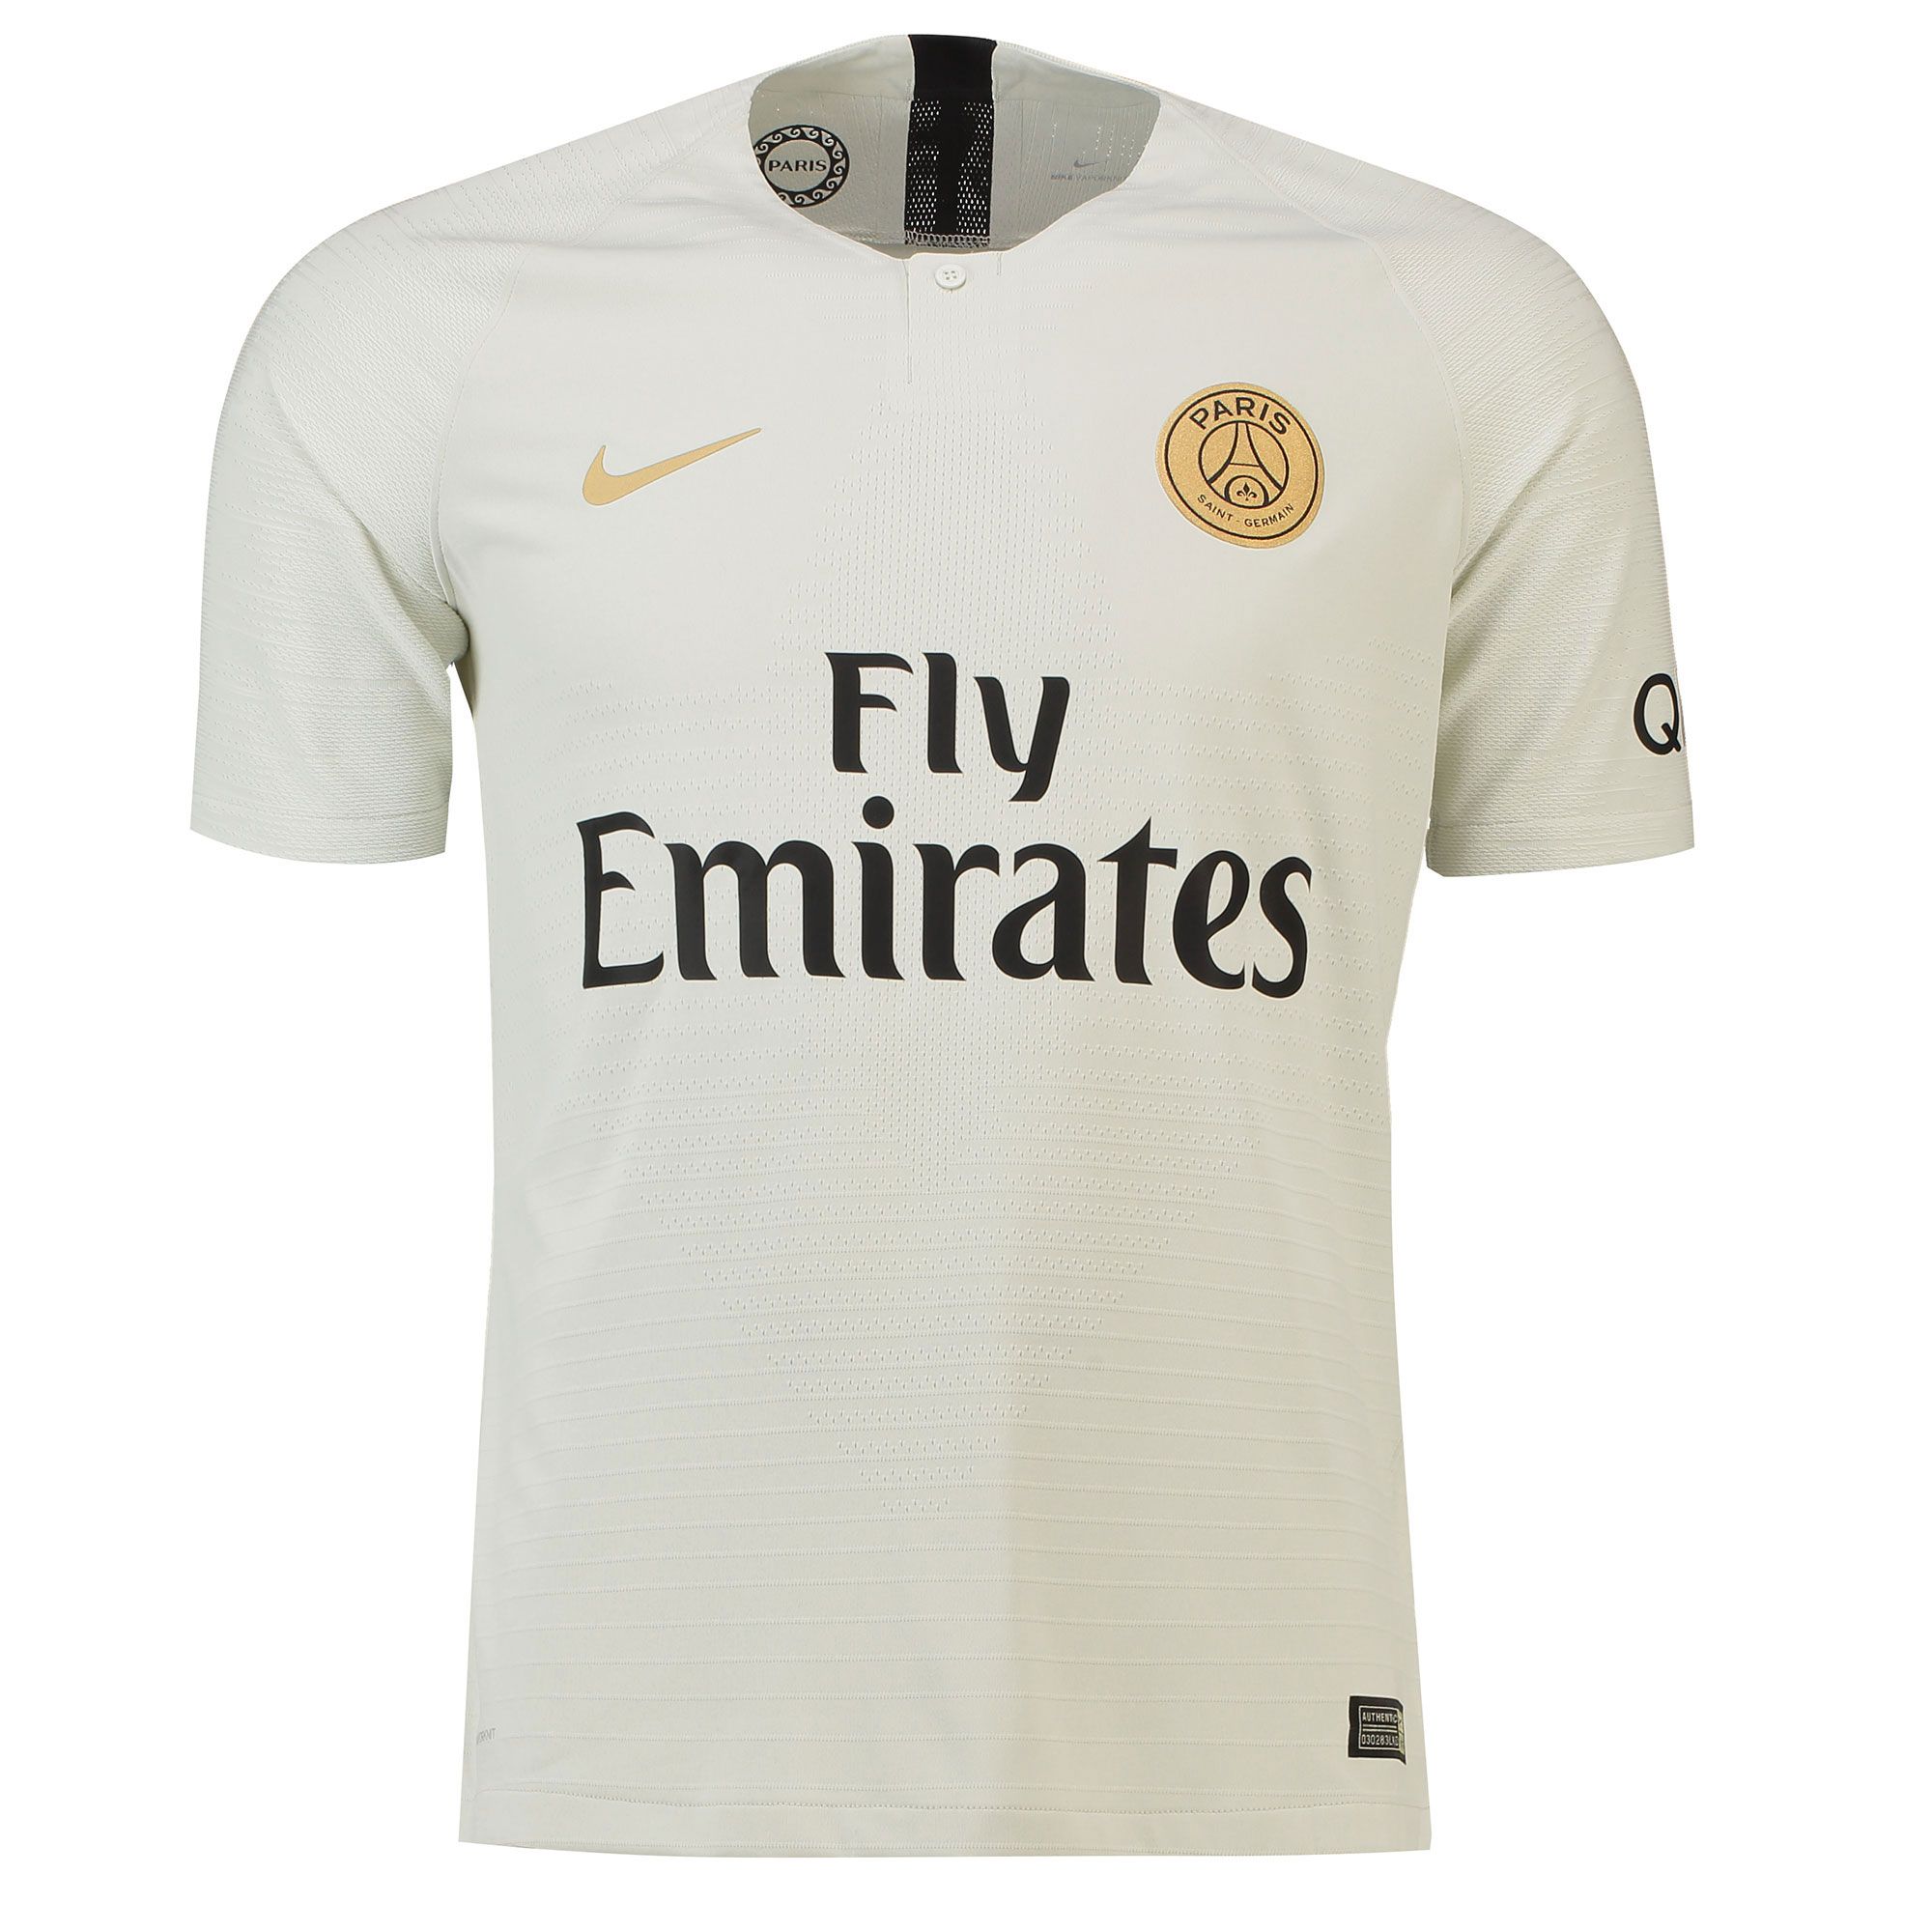 http://www.footballshirtculture.com/images/stories/paris-saint-germain-2018-2019-nike-away-kit/paris_saint_germain_18_19_nike_away_kit_a.jpg